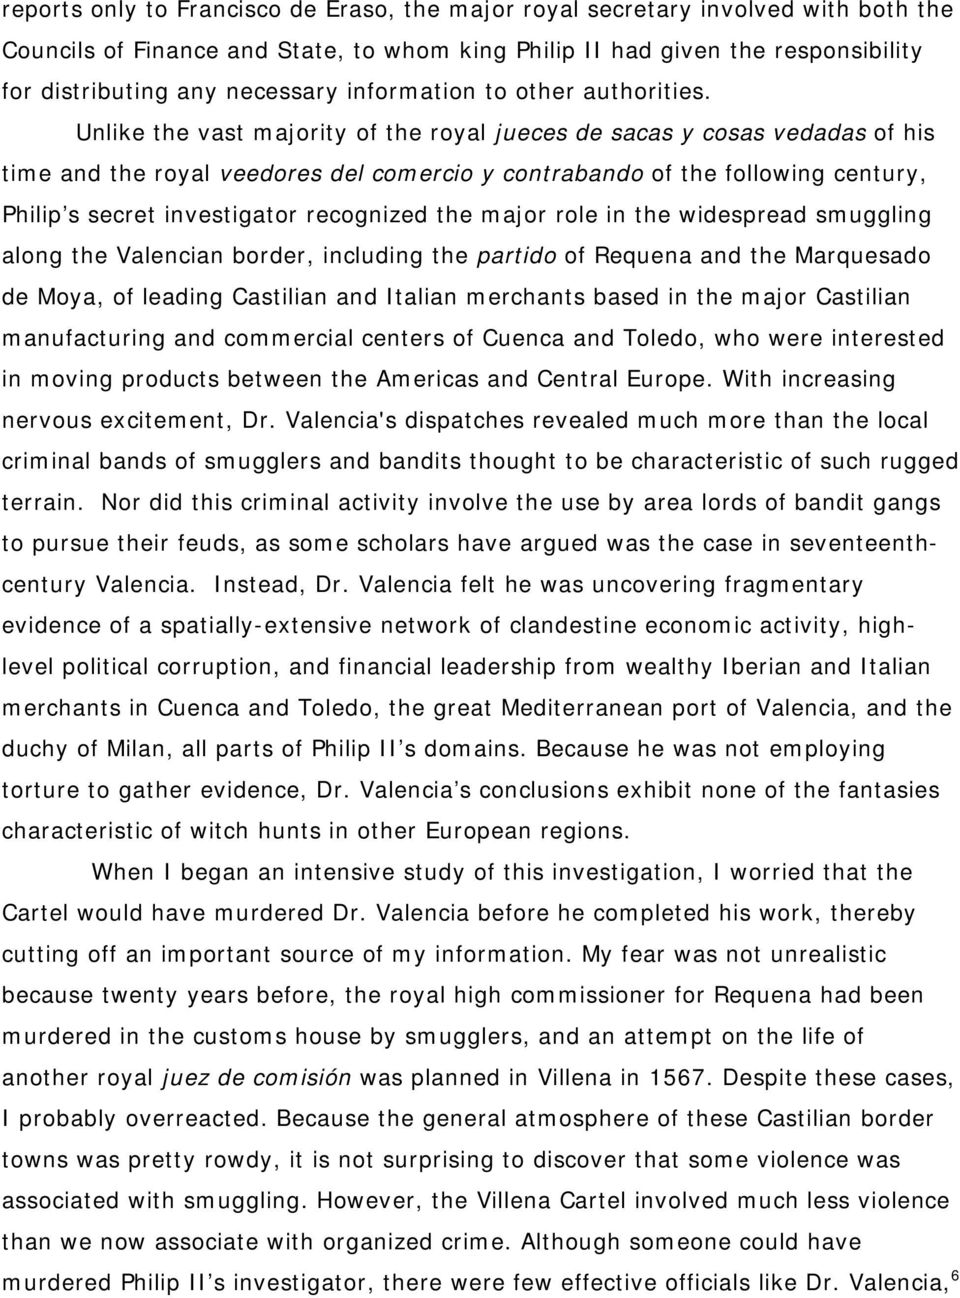 Unlike the vast majority of the royal jueces de sacas y cosas vedadas of his time and the royal veedores del comercio y contrabando of the following century, Philip s secret investigator recognized